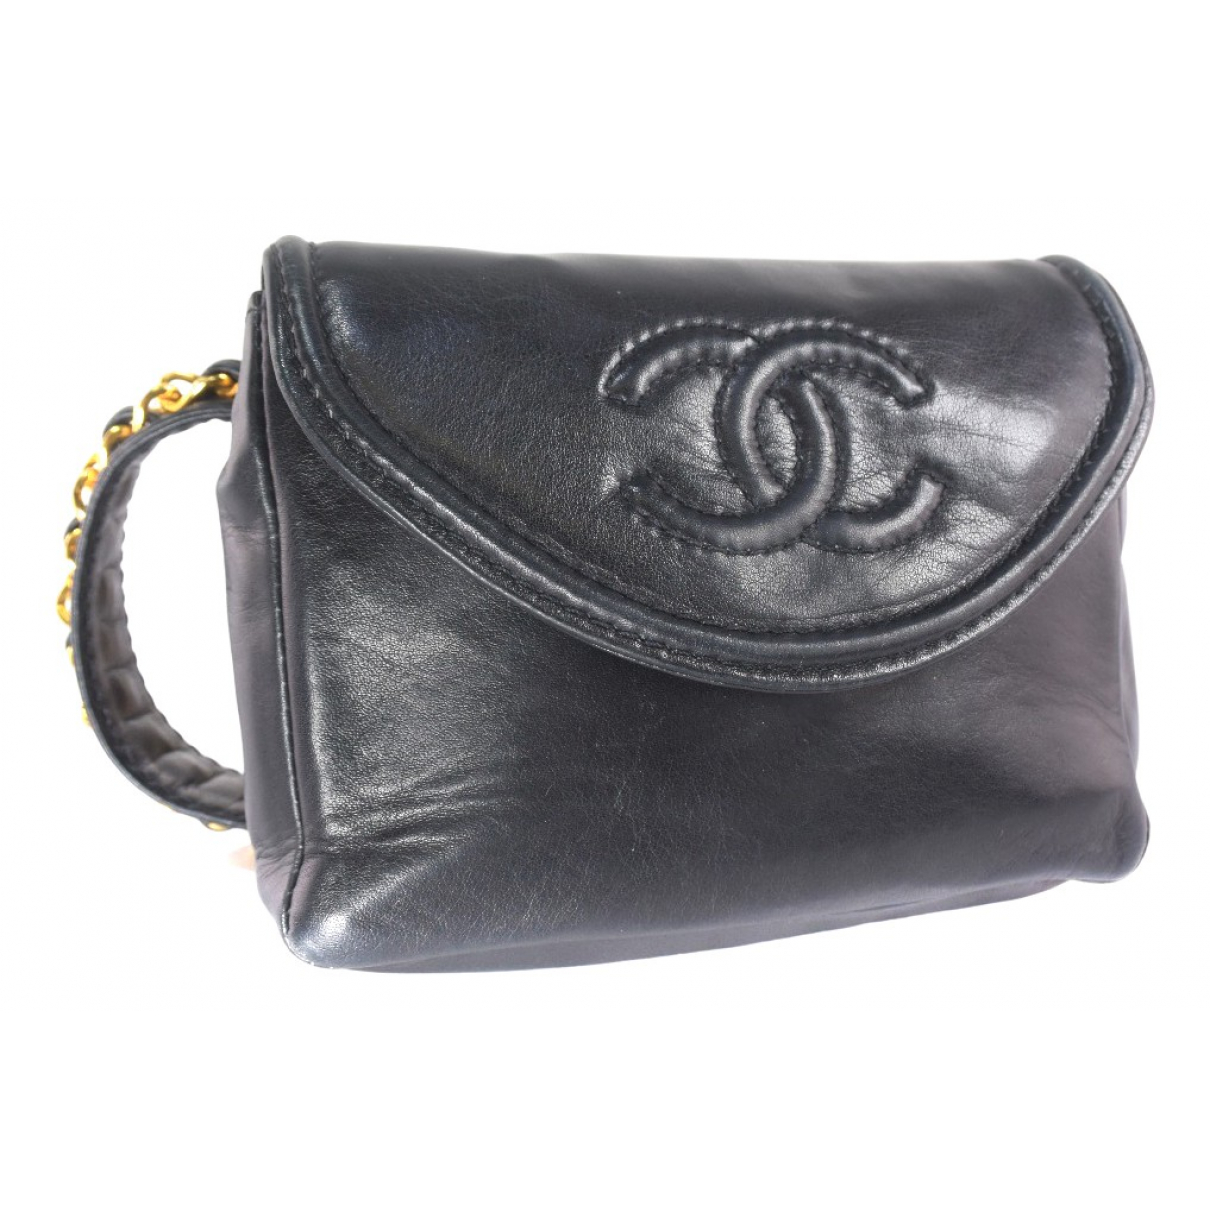 Chanel \N Black Leather Clutch bag for Women \N